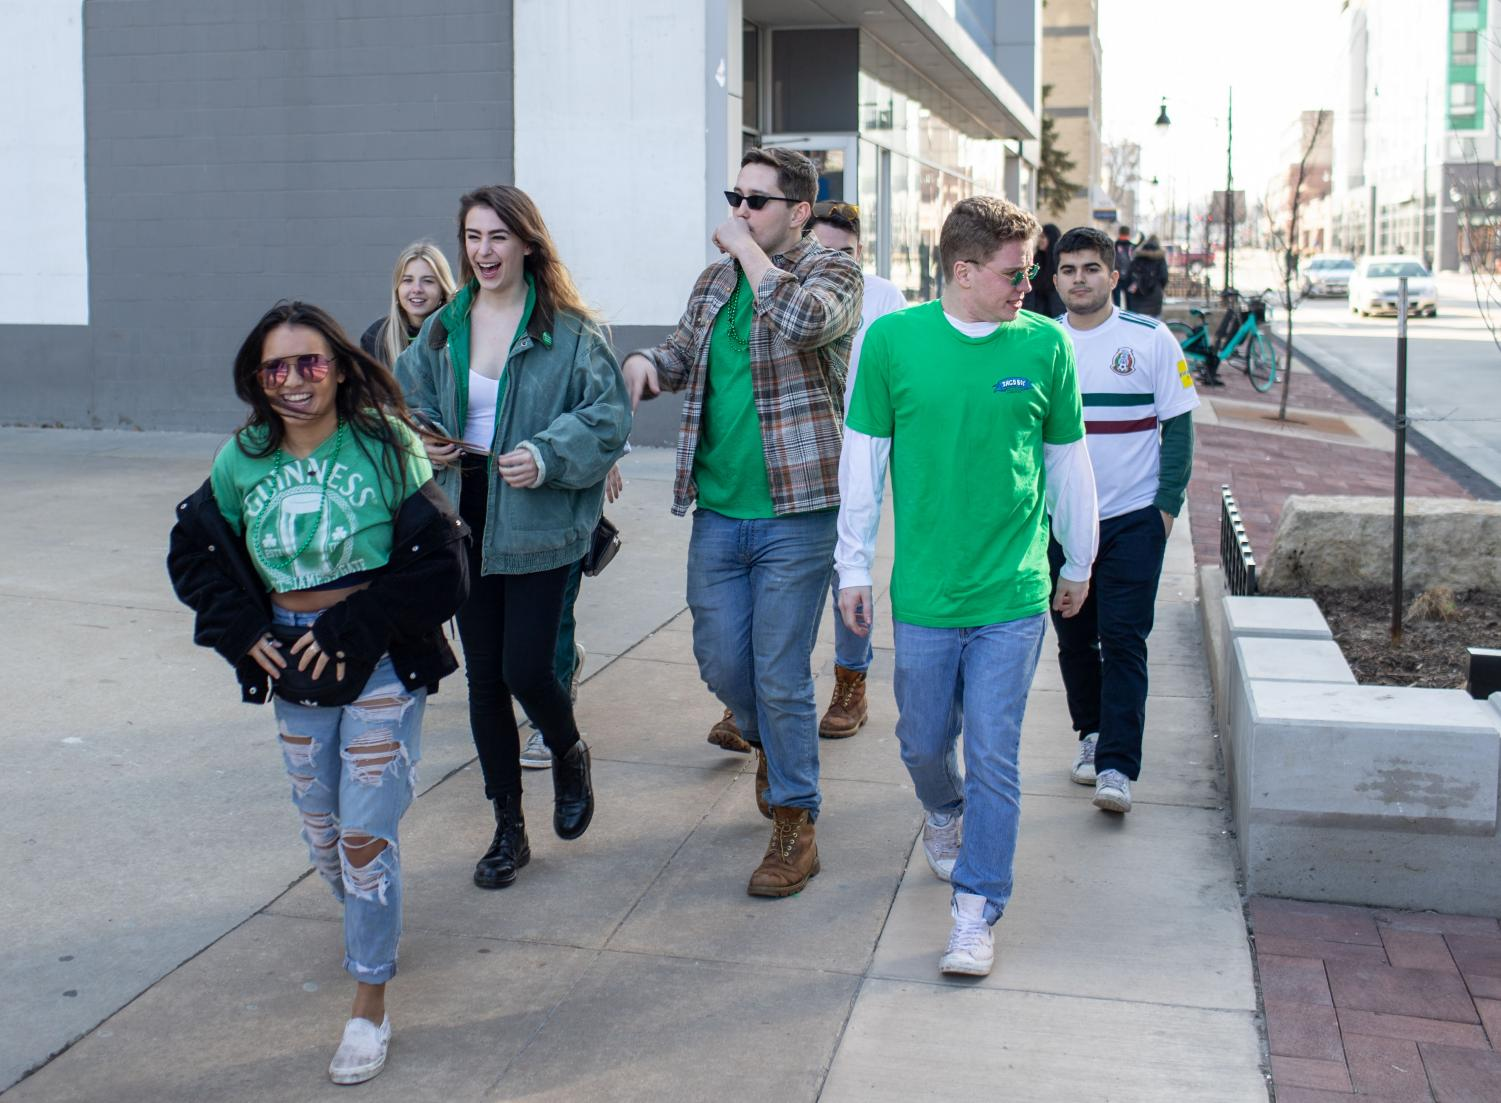 Unofficial+participants+walk+down+Green+Street+on+Friday.